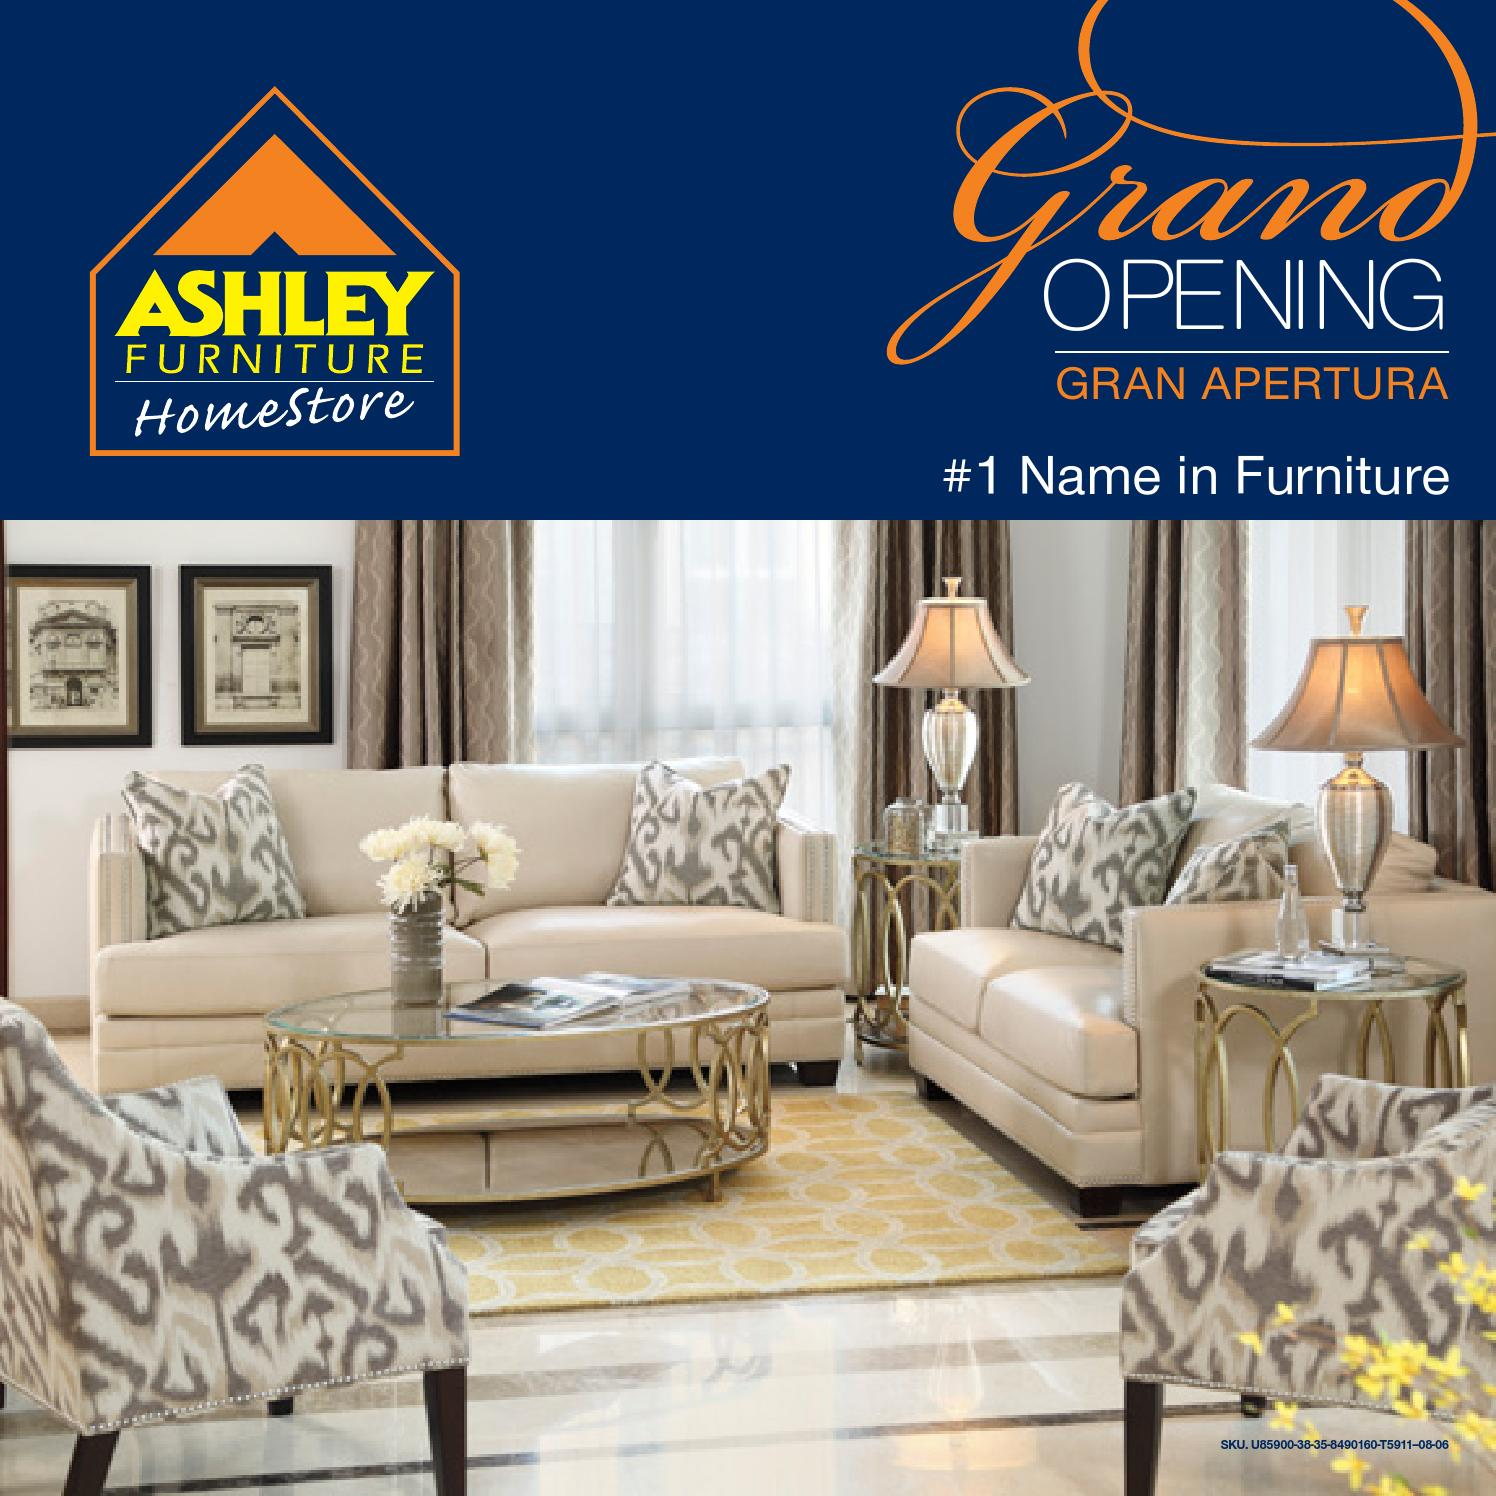 Gran Apertura Ashley Furniture HomeStore RD By Ashley